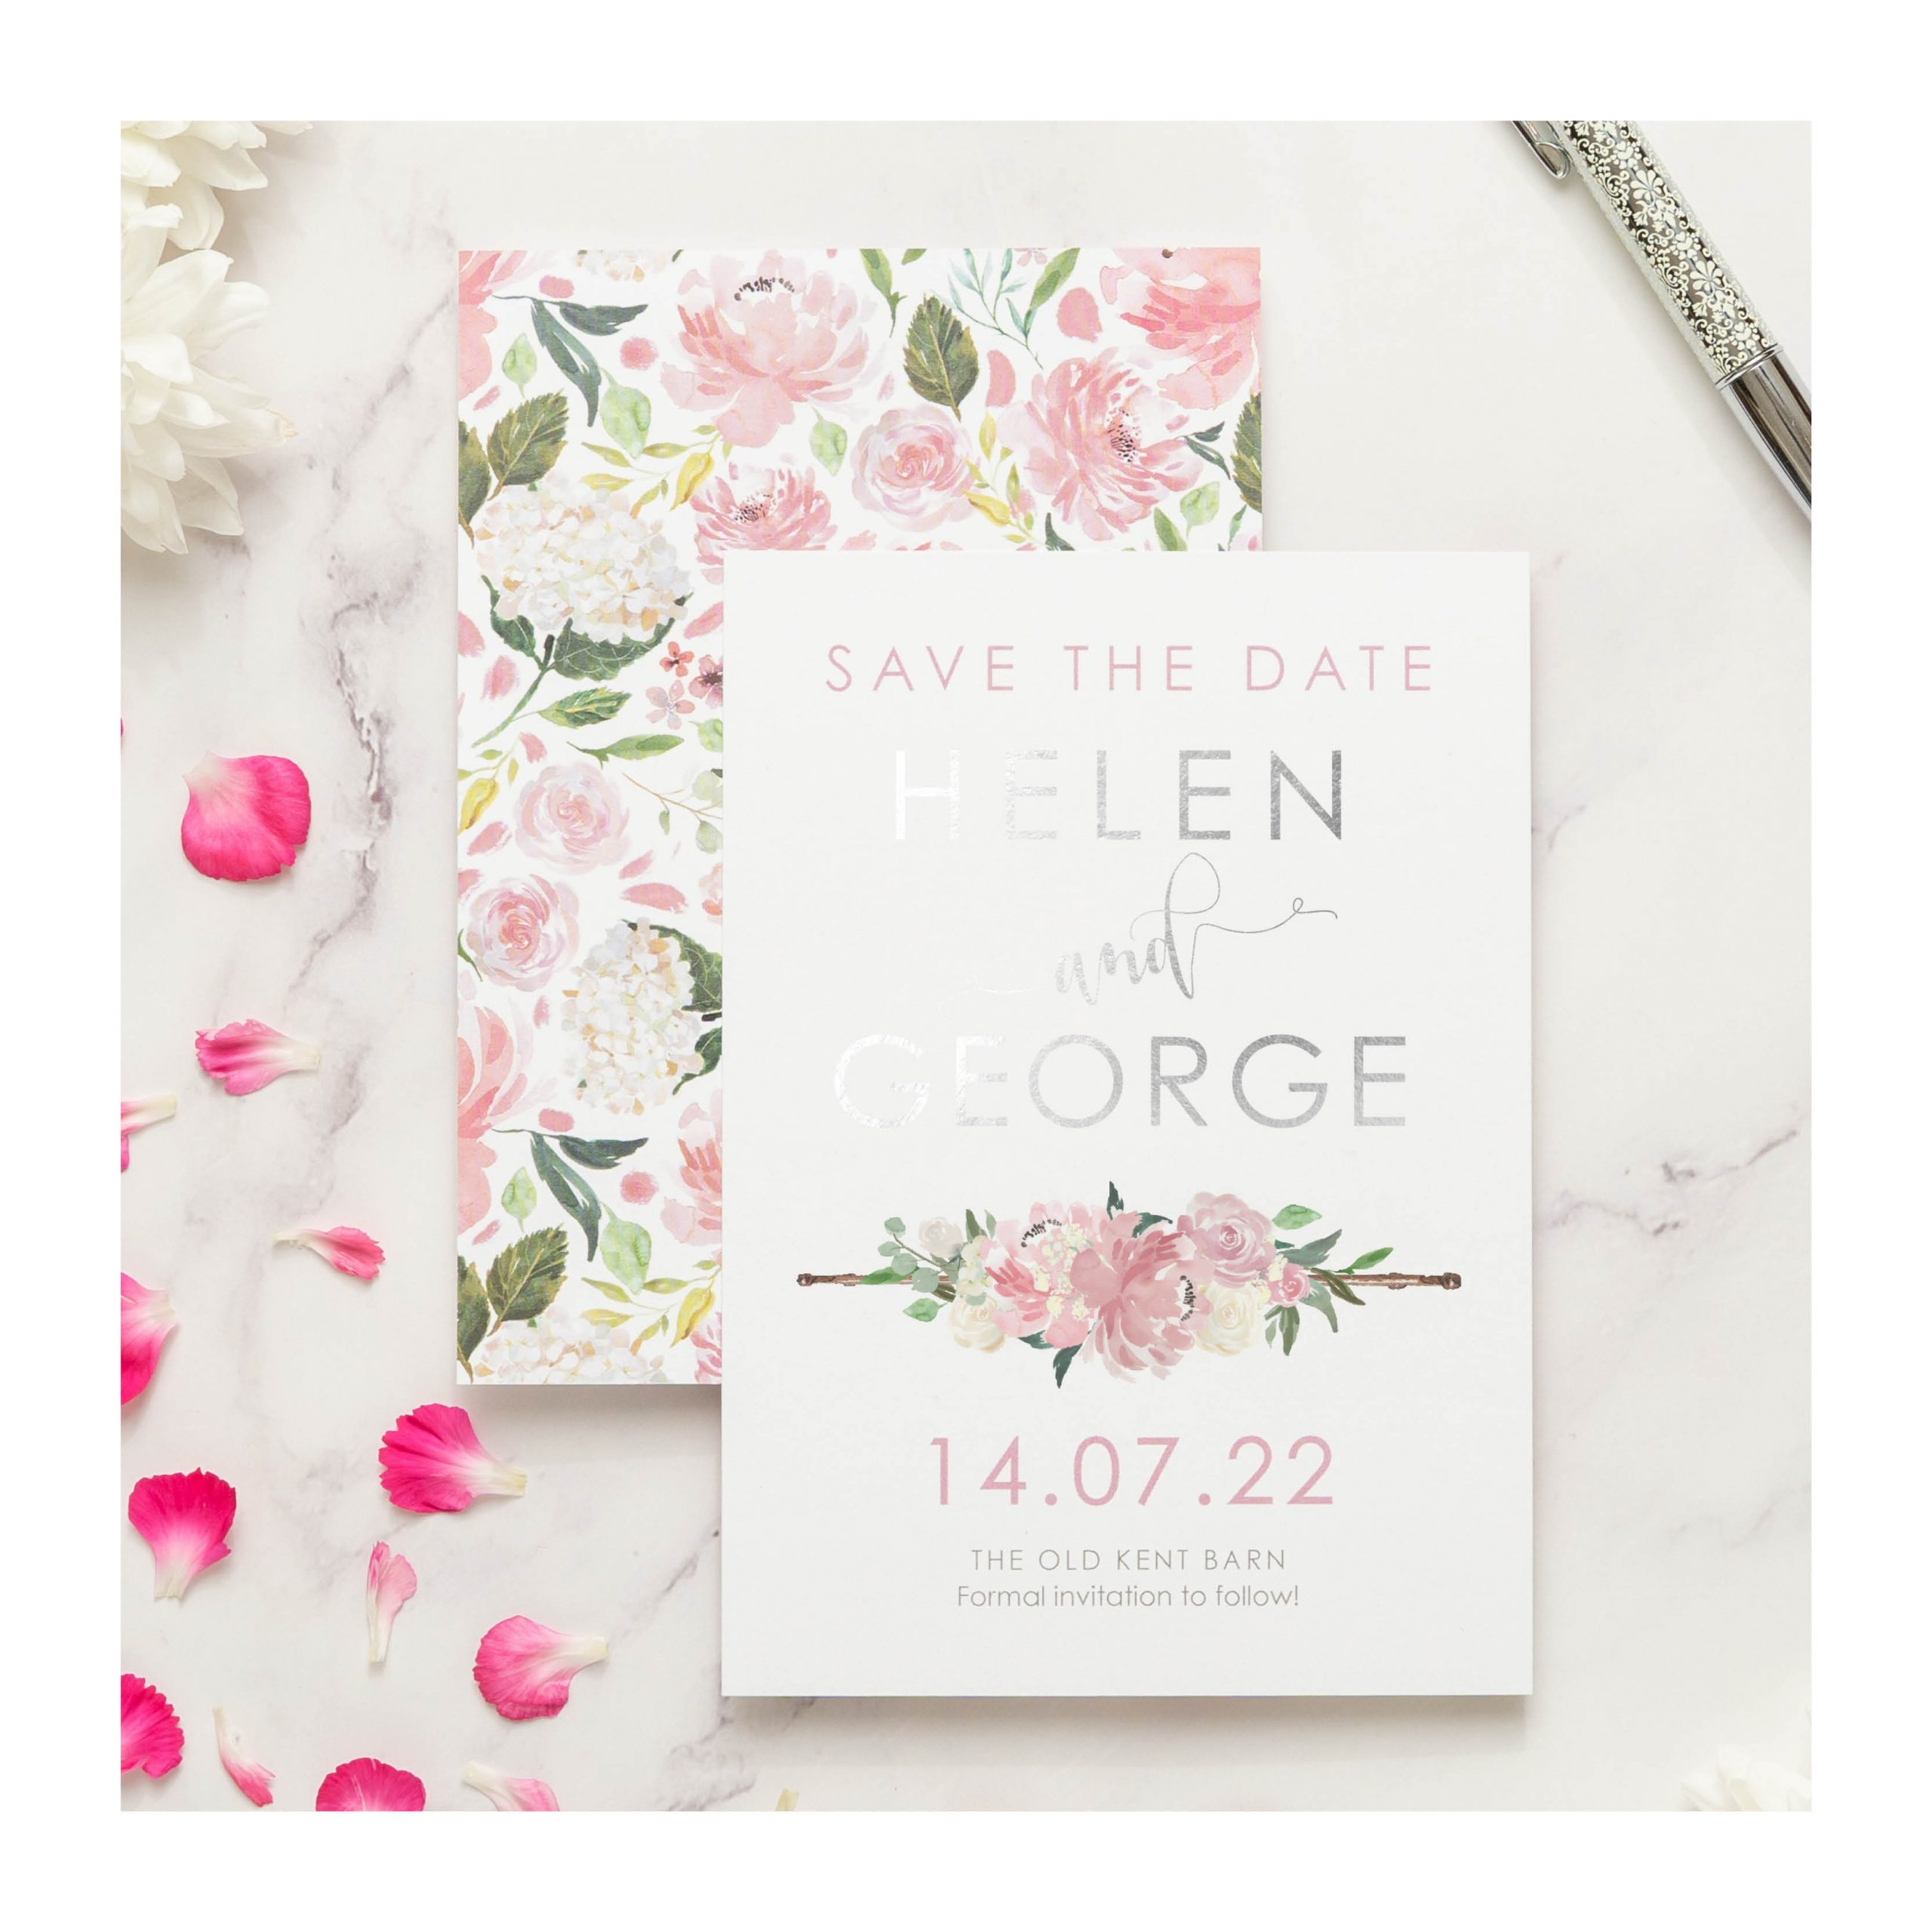 FH pink and silver save the date 2